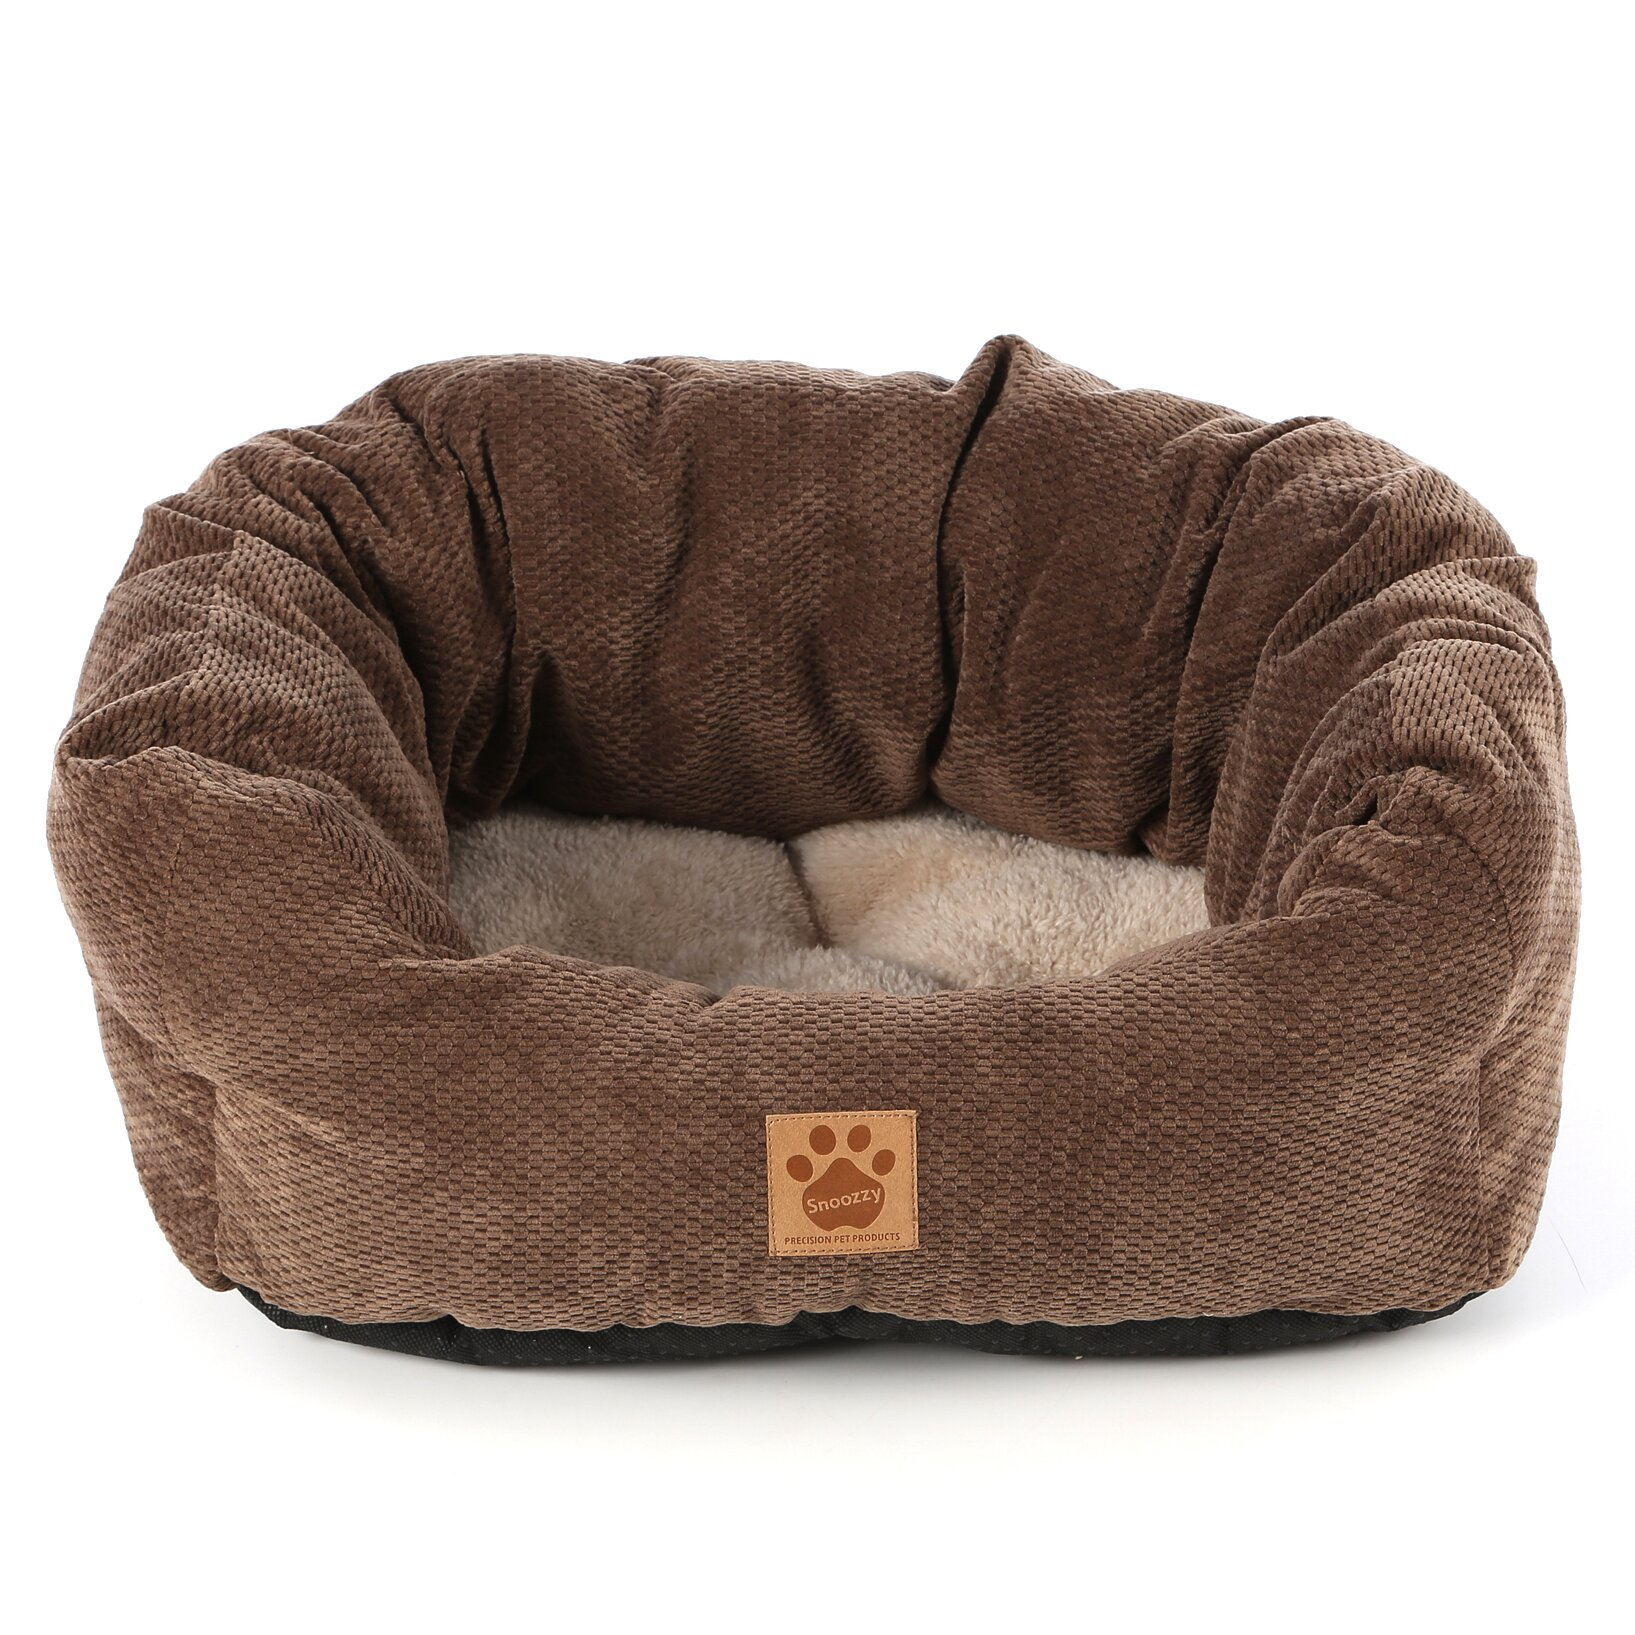 precision pet natural surroundings spot tailored daydreamer bolster dog bed reviews. Black Bedroom Furniture Sets. Home Design Ideas